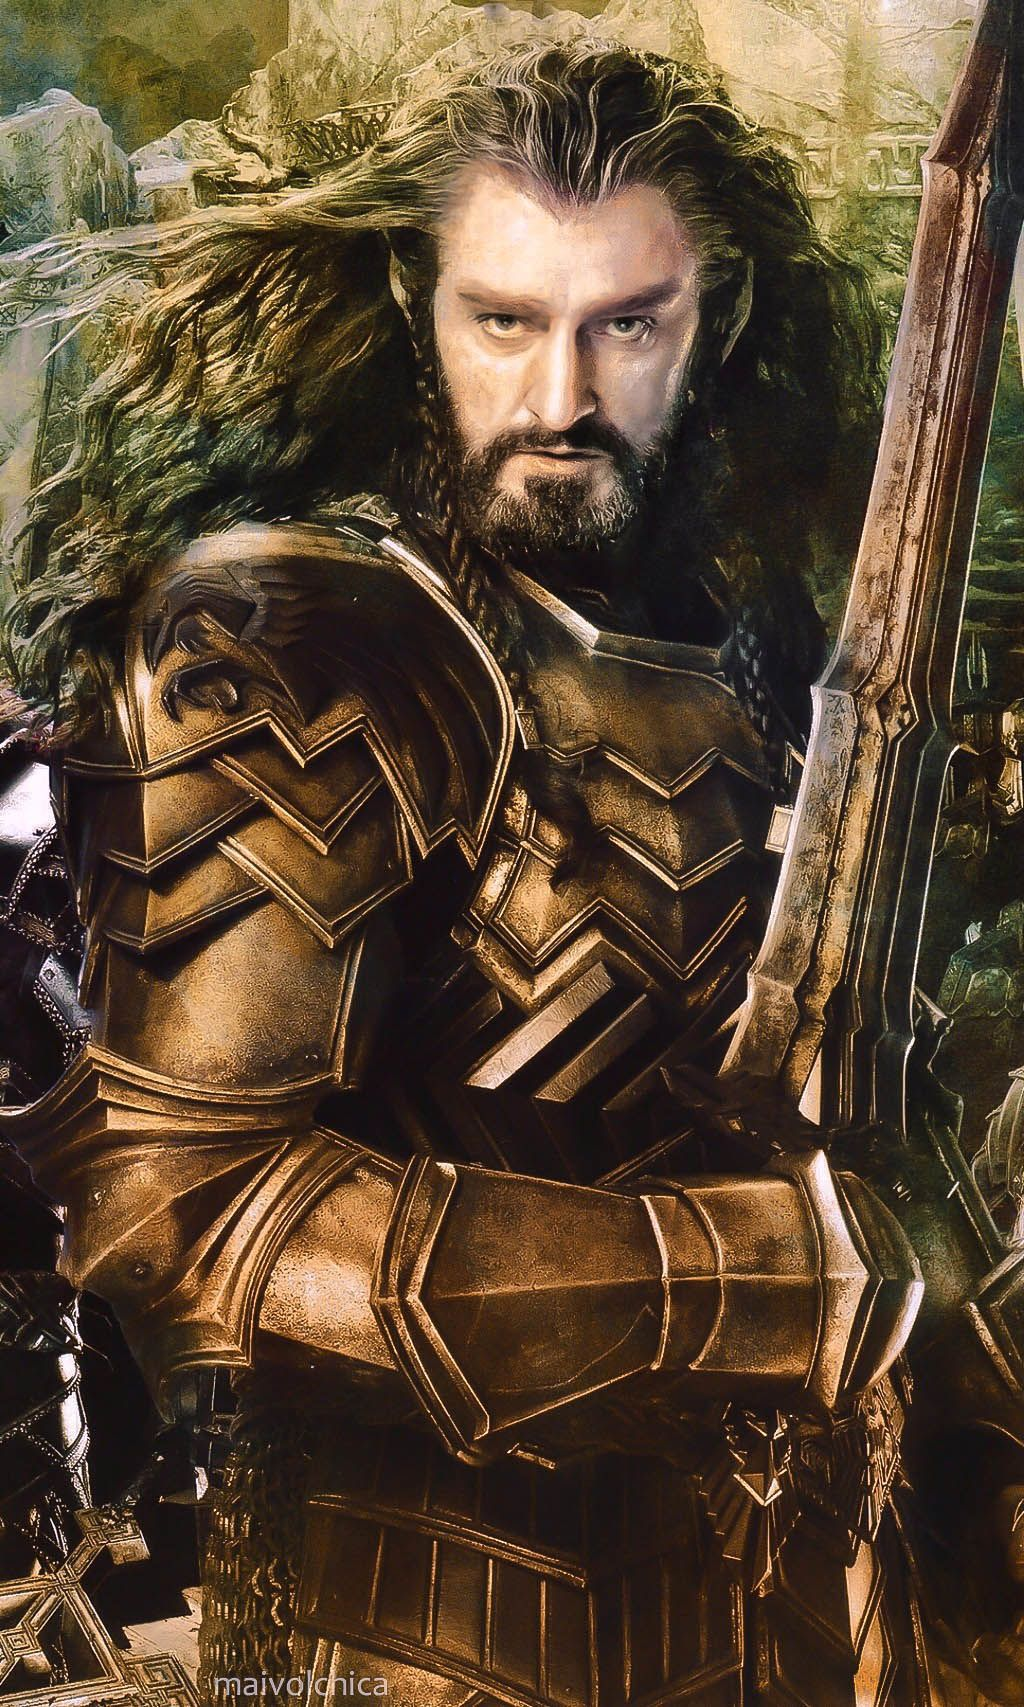 Richard armitage as thorin oakenshield in the hobbit the battle of the five armies cosplay - Dessin seigneur des anneaux ...